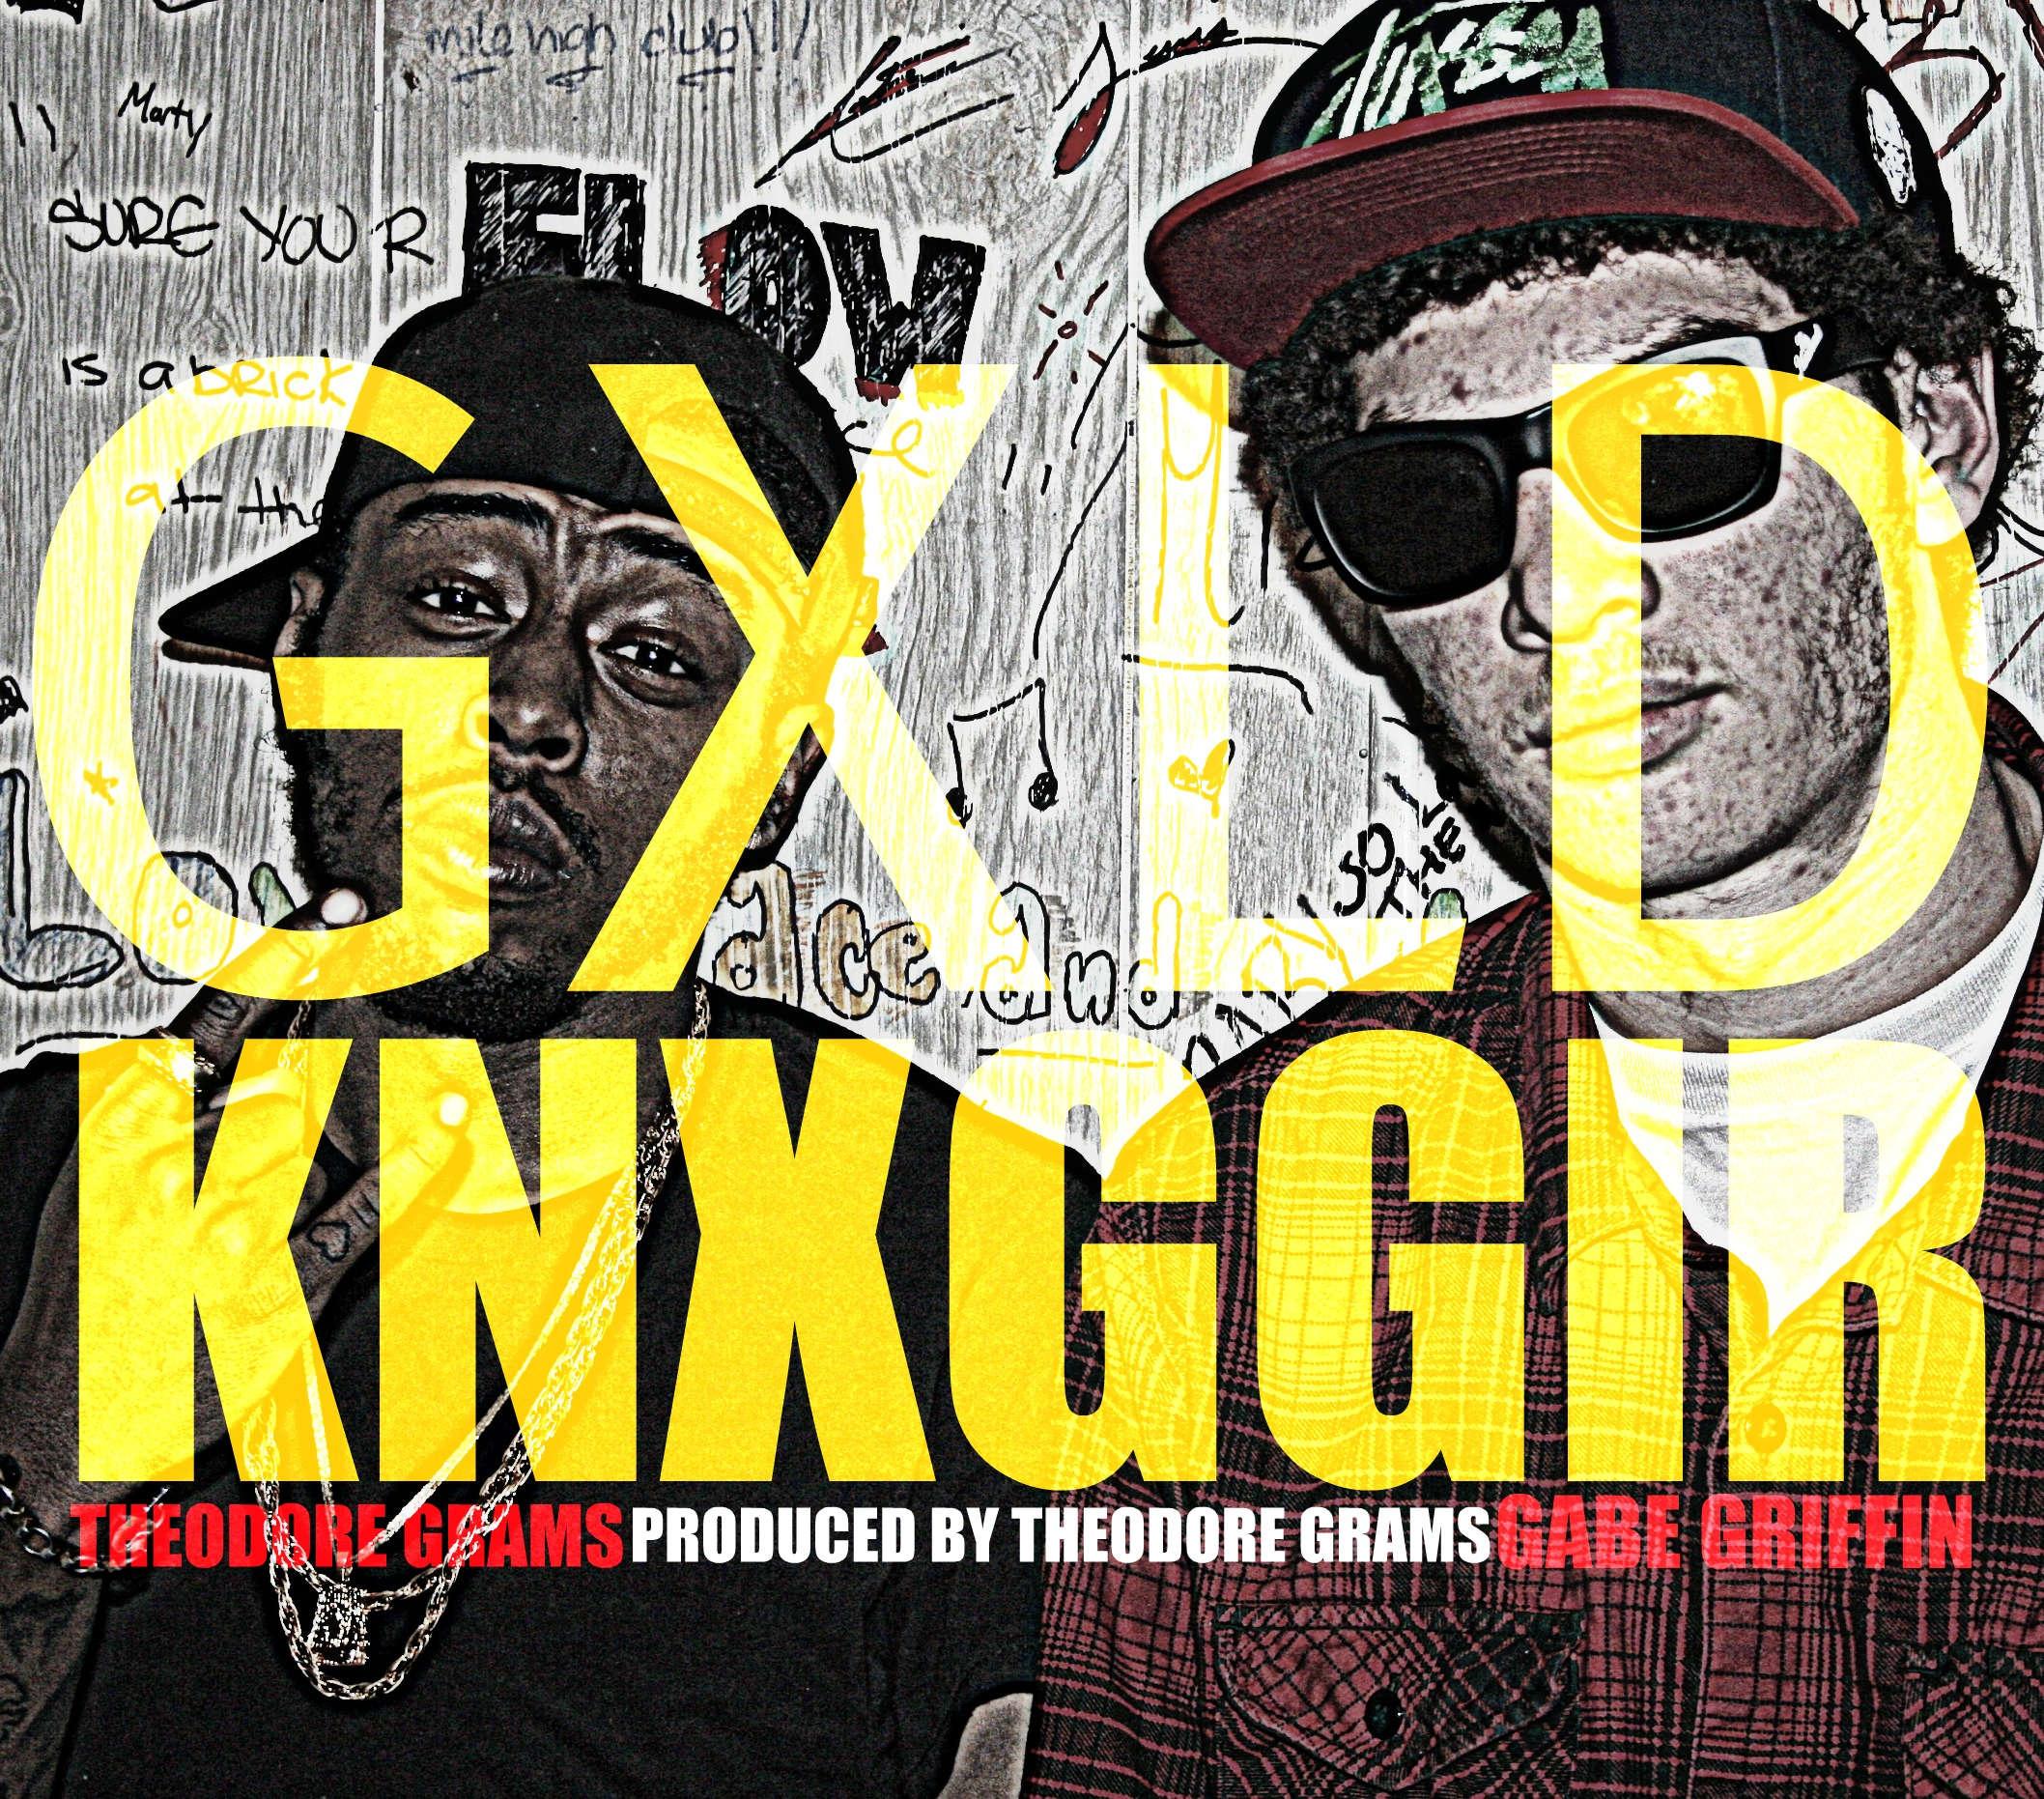 GXLD-KNXGGIR Theodore Grams - Gxld Knxggir Ft. Gabe Griffin (Prod by Theodore Grams)